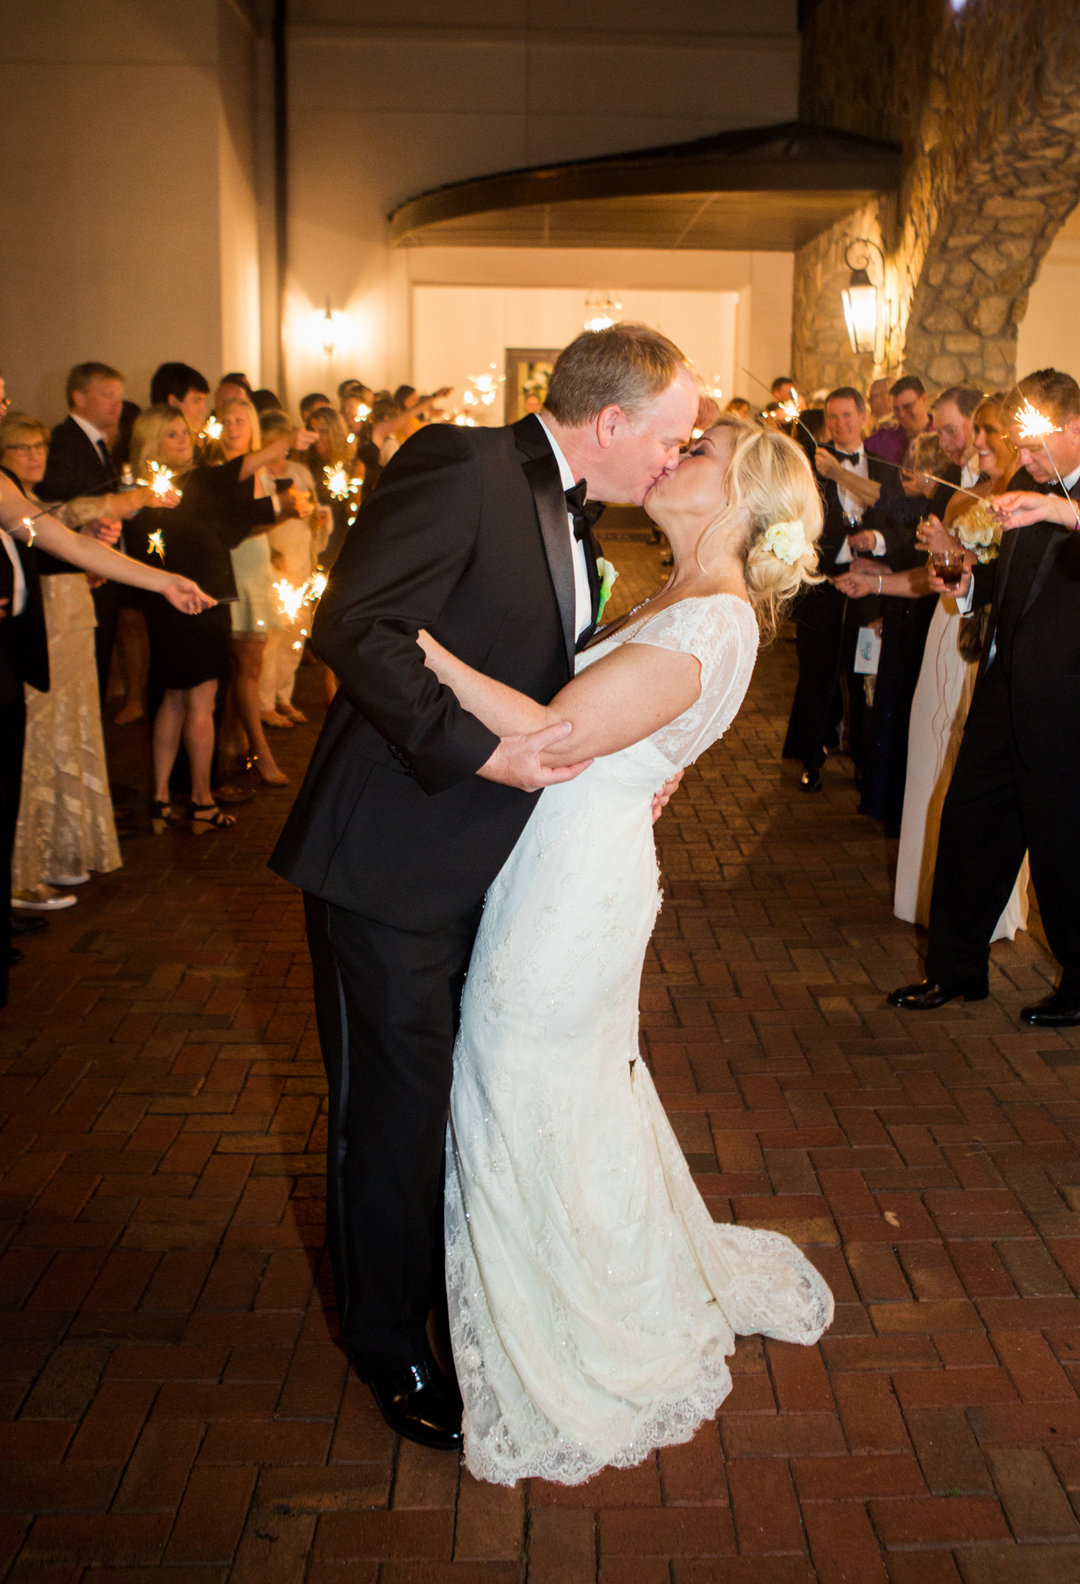 Margie_John_Wedding_Mo_Davis_Photography14.jpg